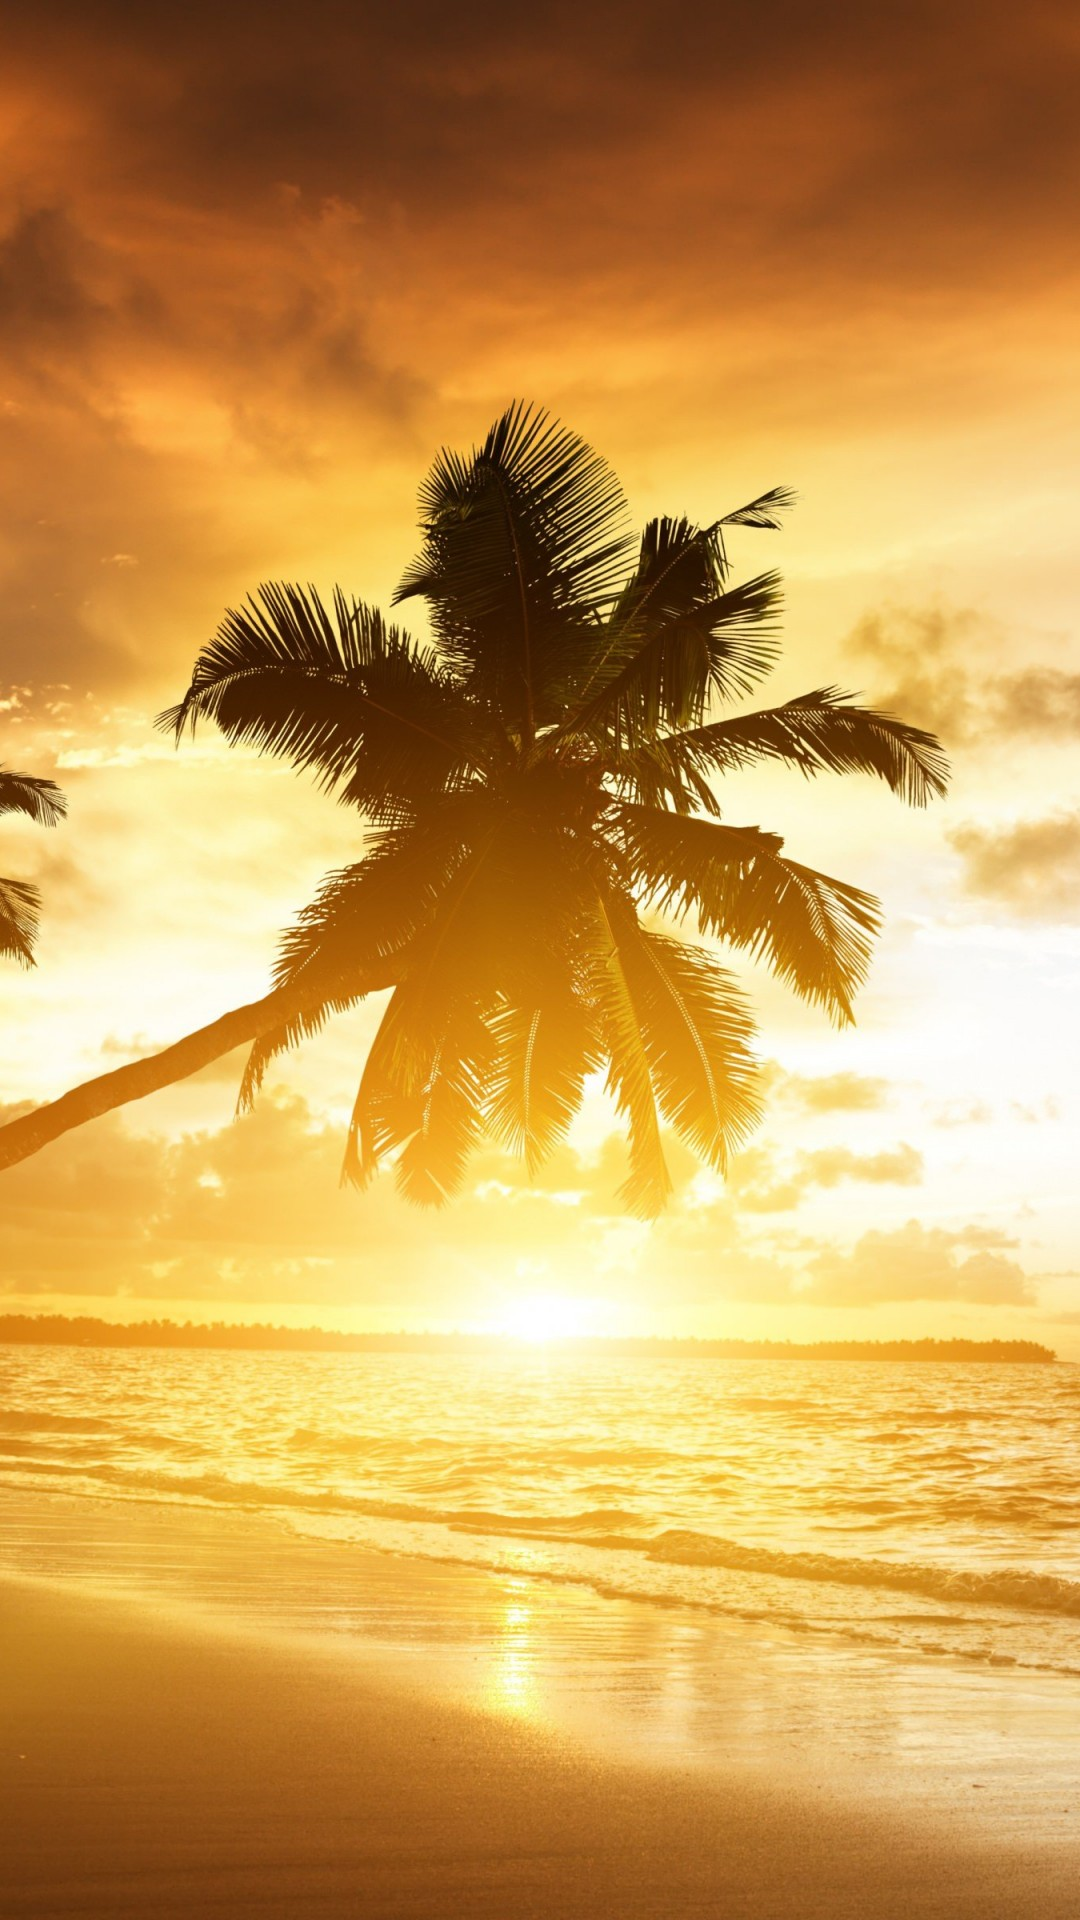 Beach With Palm Trees At Sunset Wallpaper for Google Nexus 5